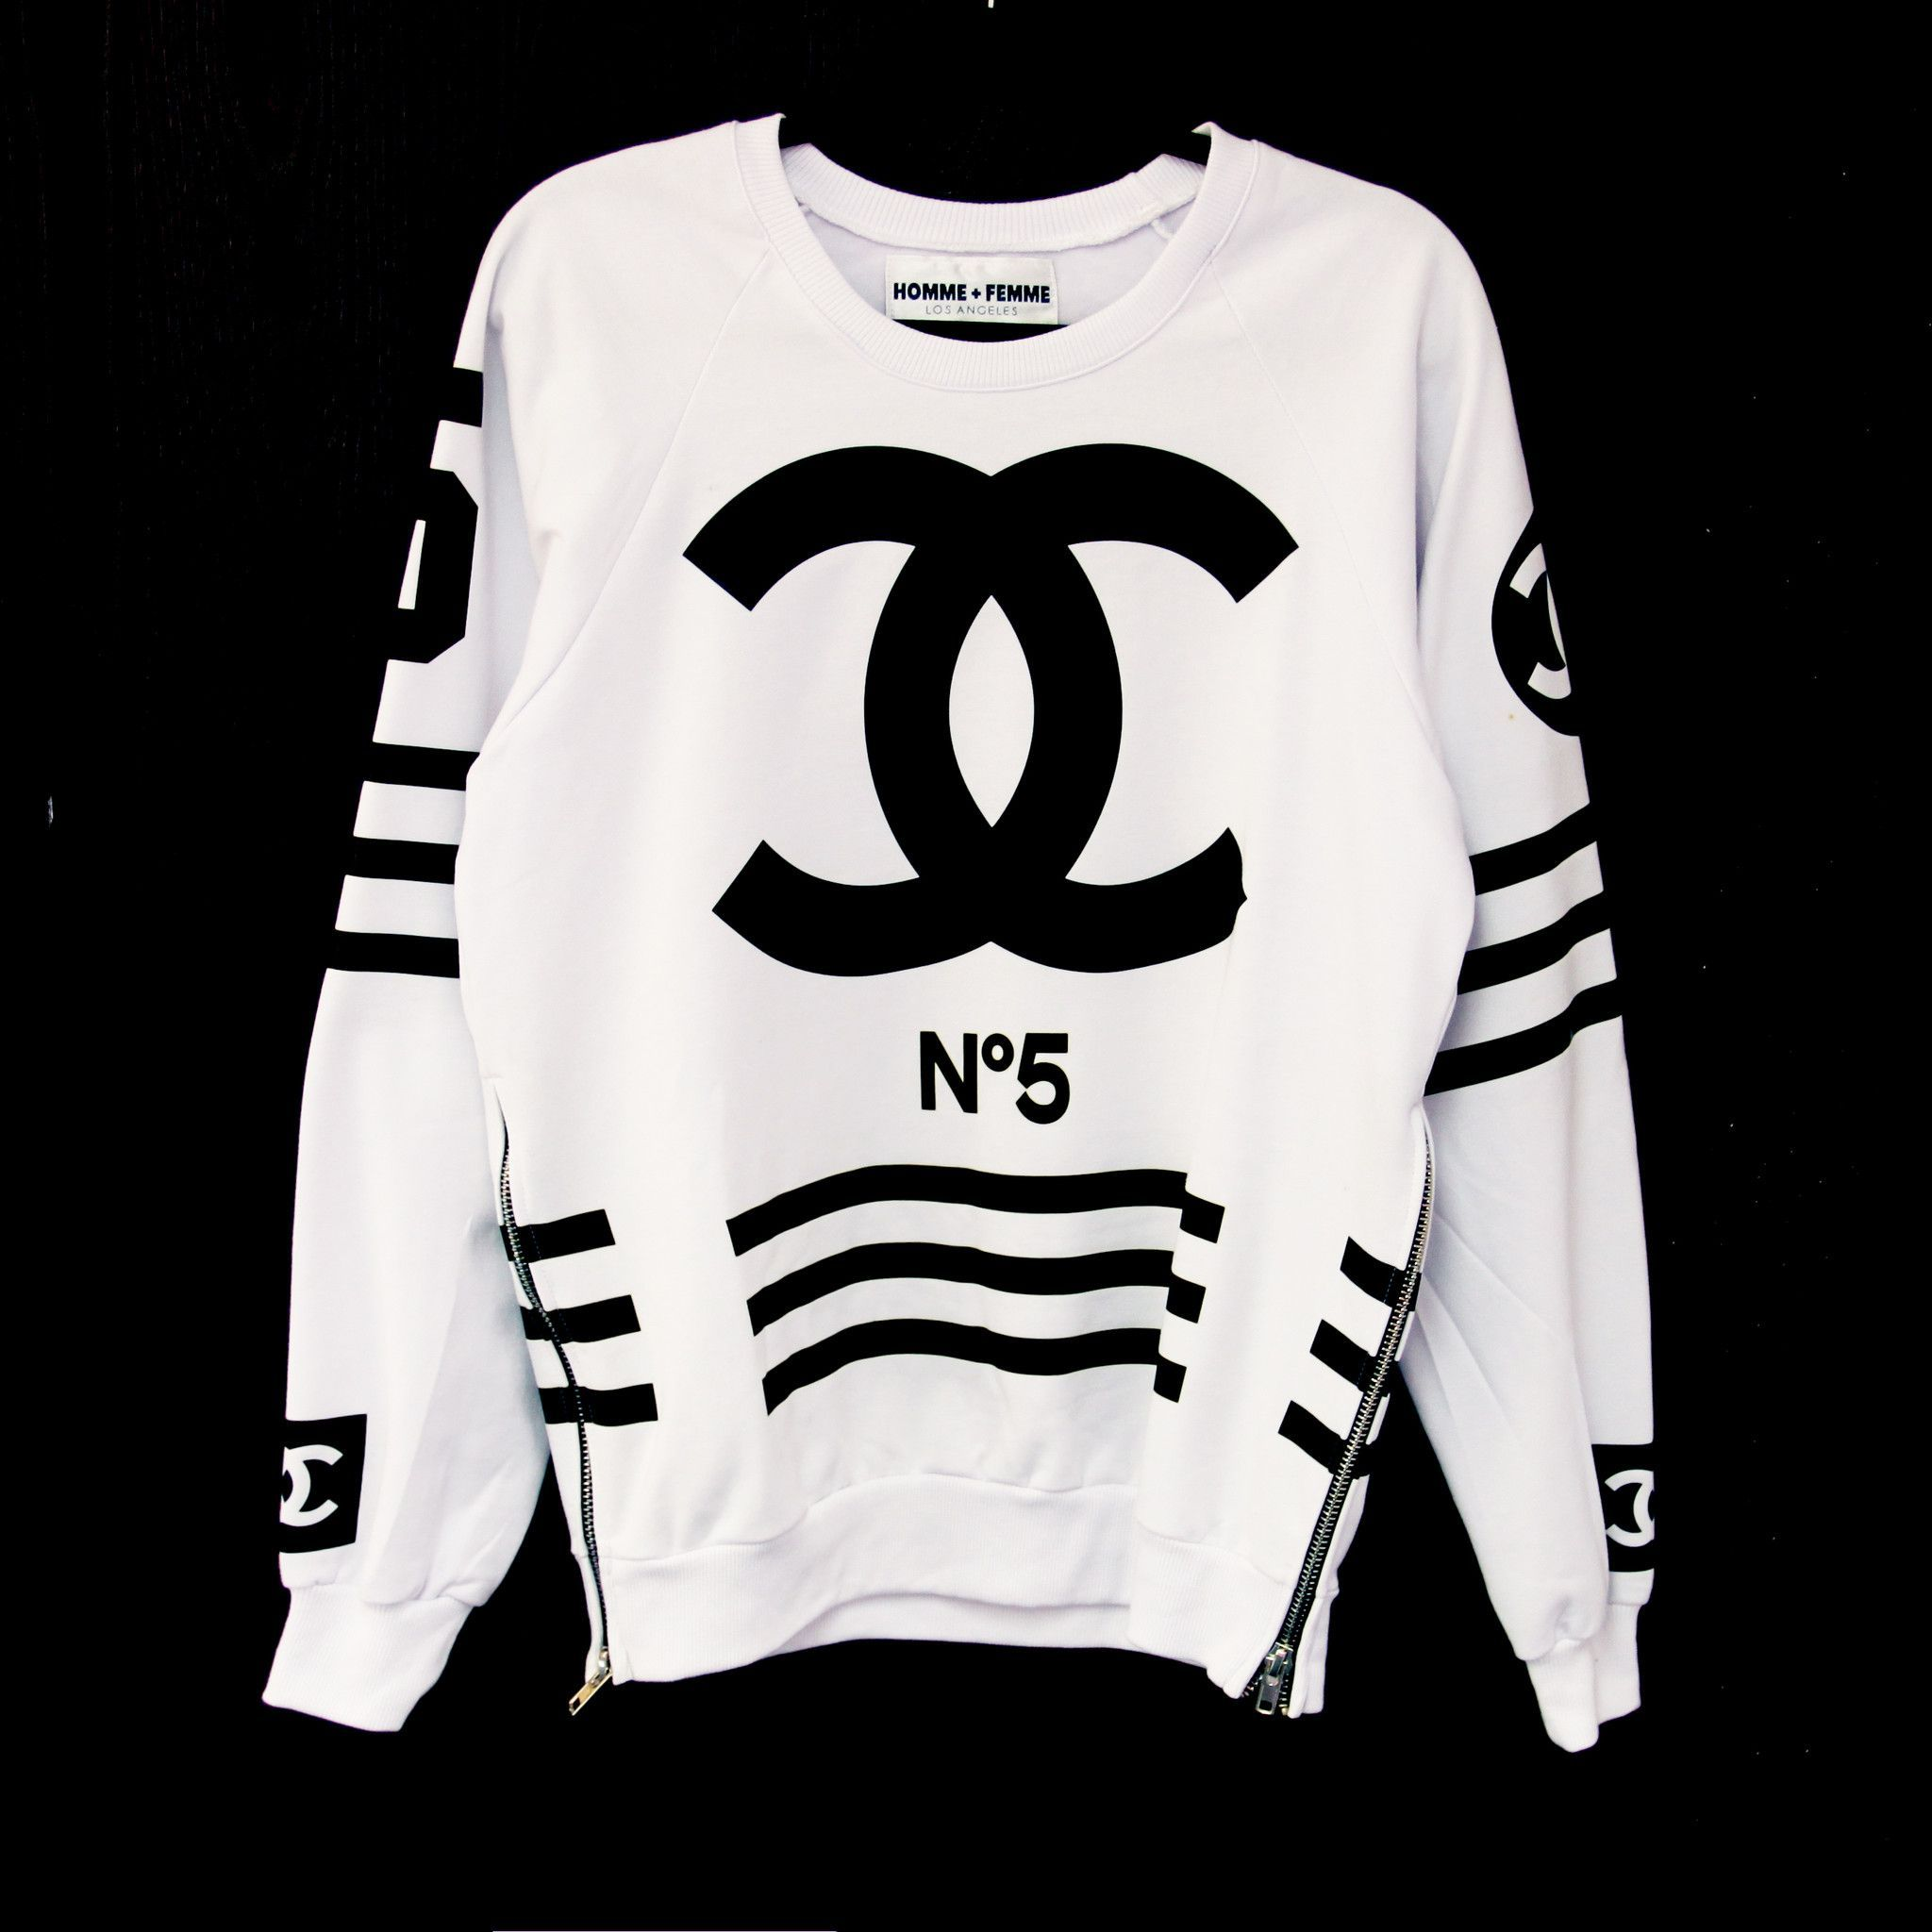 Homme Femme Hf Chanel No 5 Logo On Front Hf Coco 5 On Back 100